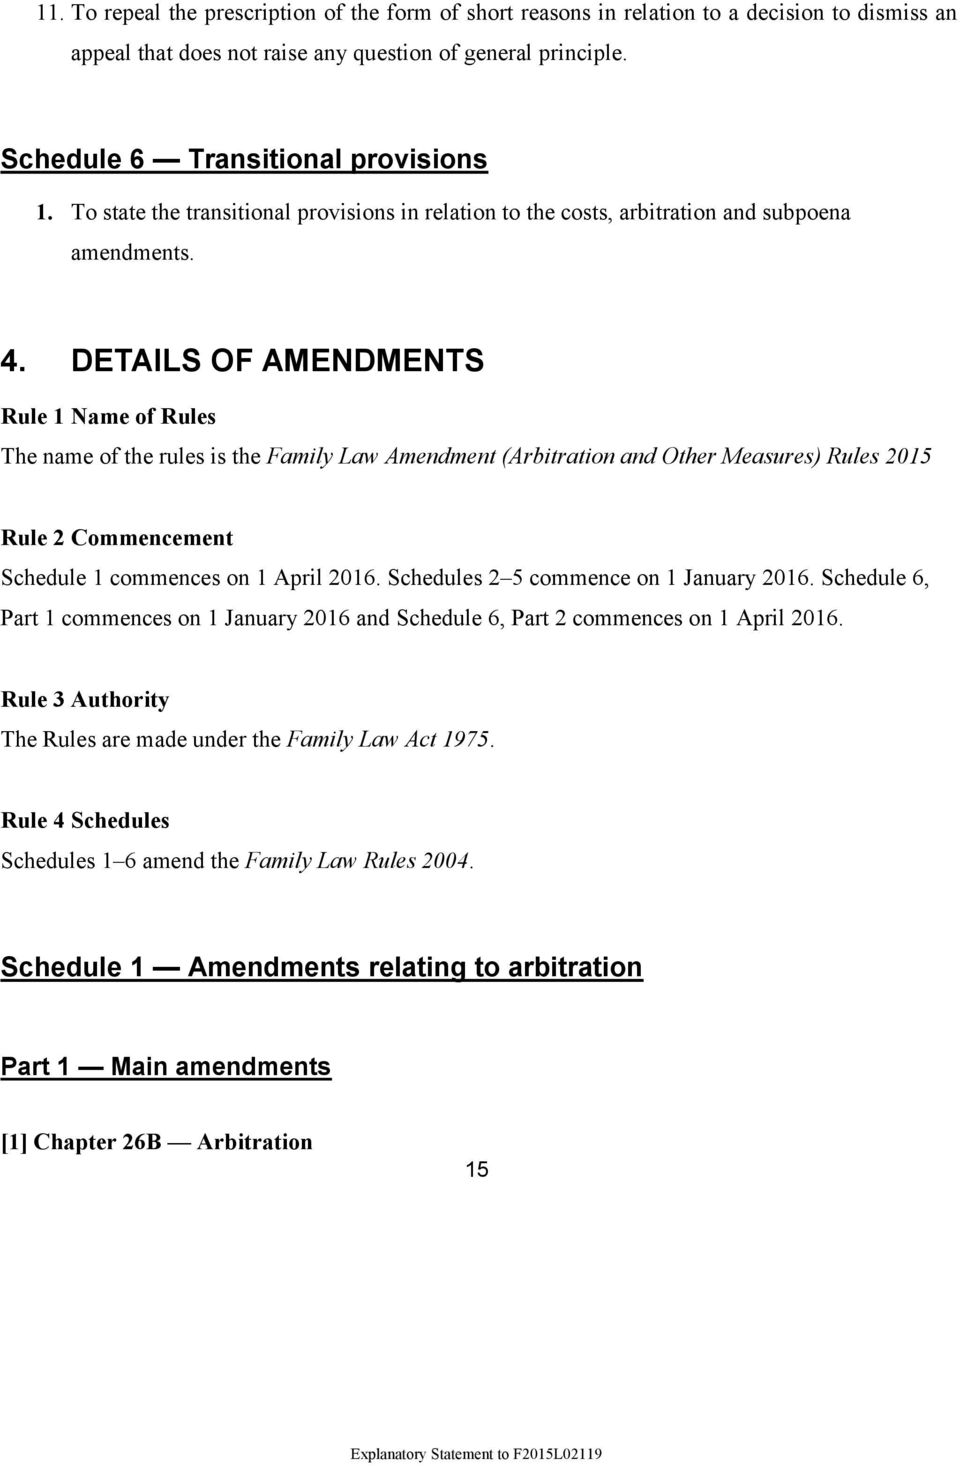 DETAILS OF AMENDMENTS Rule 1 Name of Rules The name of the rules is the Family Law Amendment (Arbitration and Other Measures) Rules 2015 Rule 2 Commencement Schedule 1 commences on 1 April 2016.